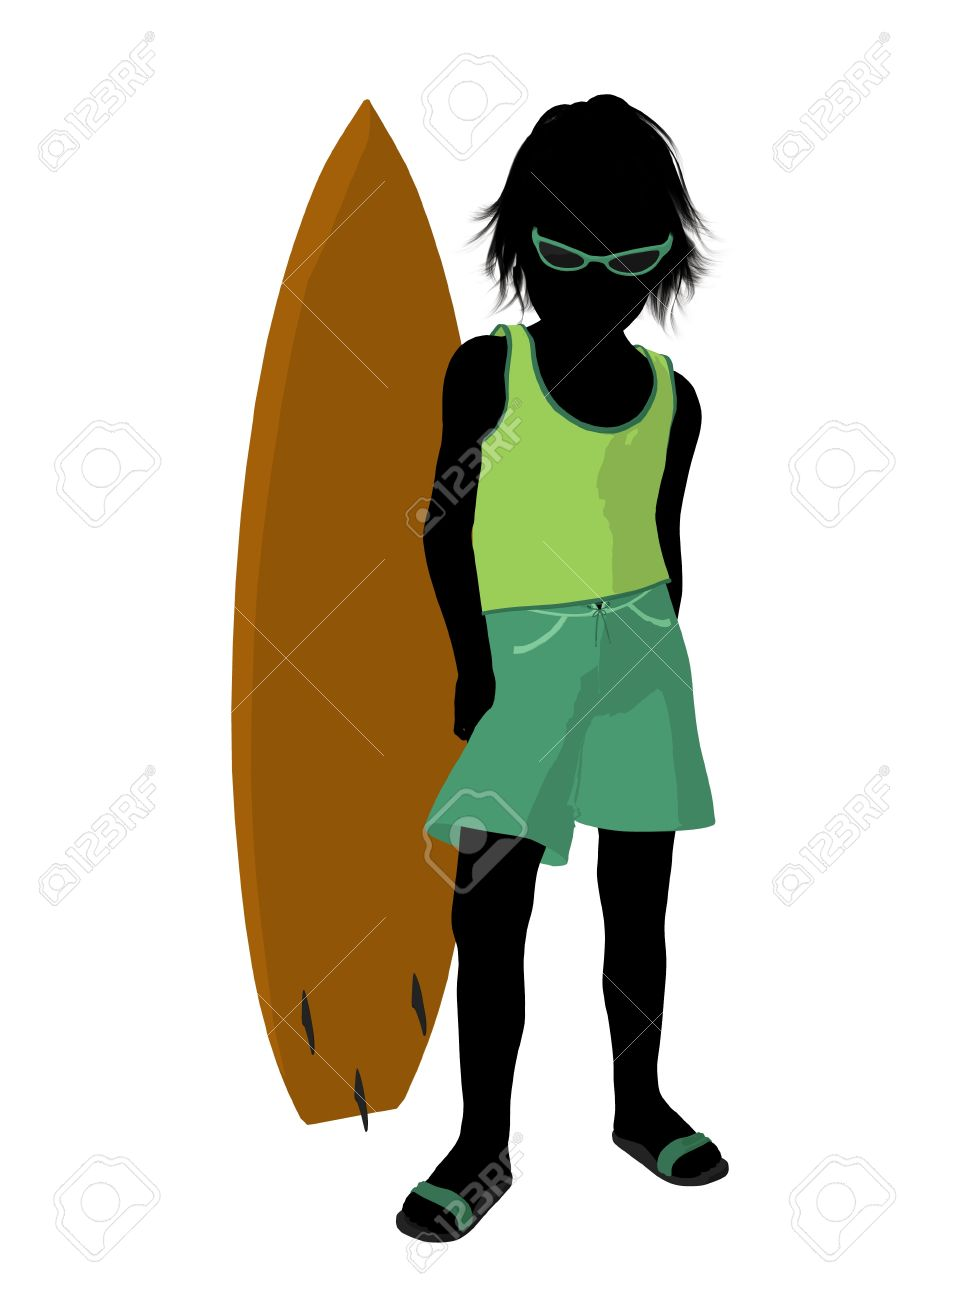 Silhouette boy surfboard clipart vector free download Beach Boy With Surfboard Illustration Silhouette On A White ... vector free download